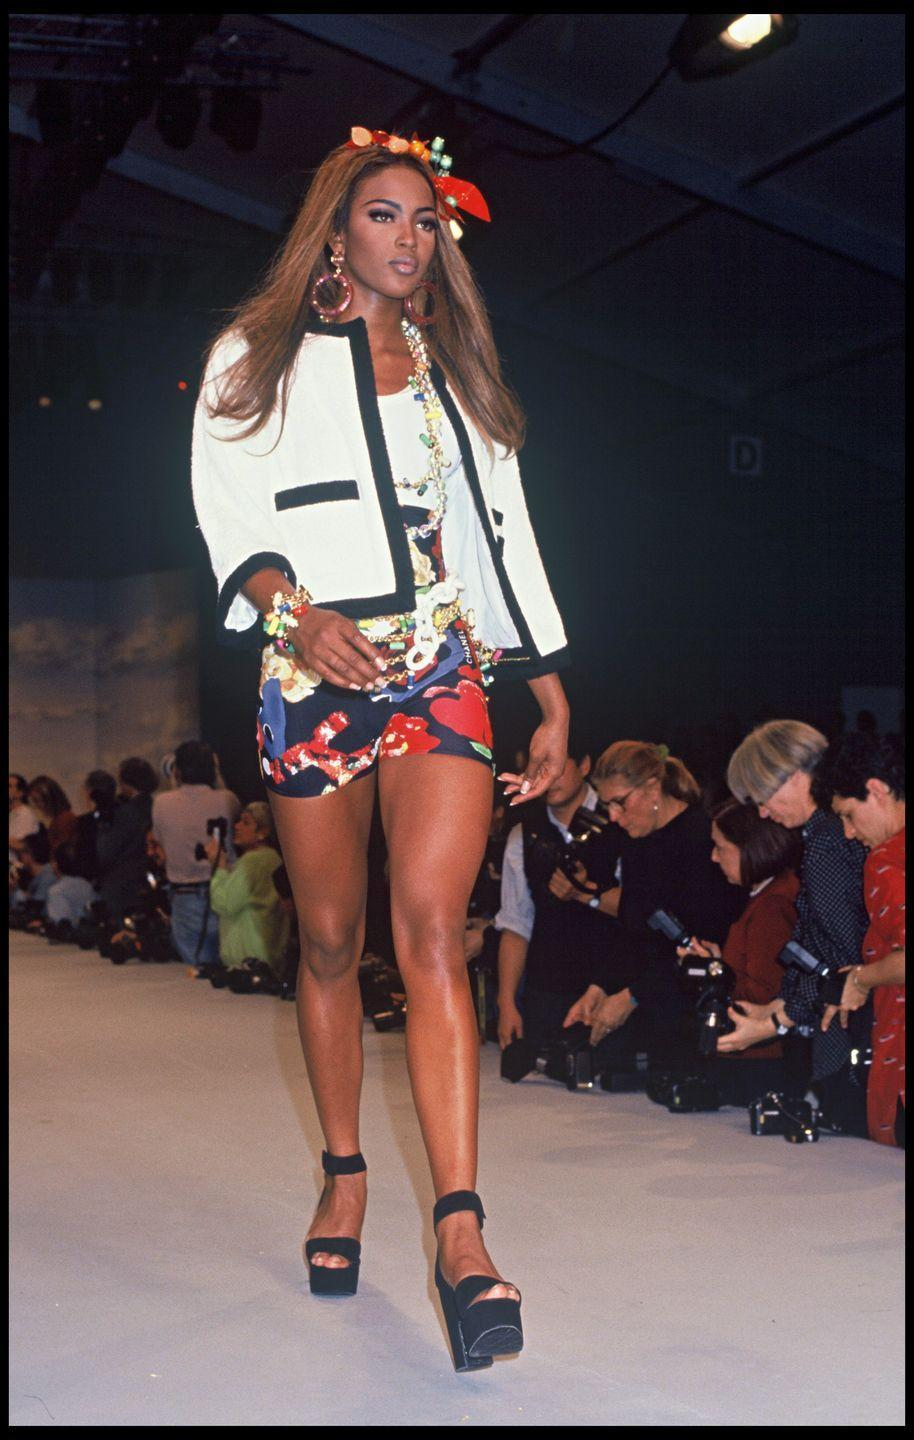 <p>Also making a big splash in the '90s were giant platform sandals, as modeled by Naomi Campbell at Chanel's Spring/Summer '92 show in Paris. Everyone wanted a pair of these shoes, no matter how unsteady they seemed. </p>